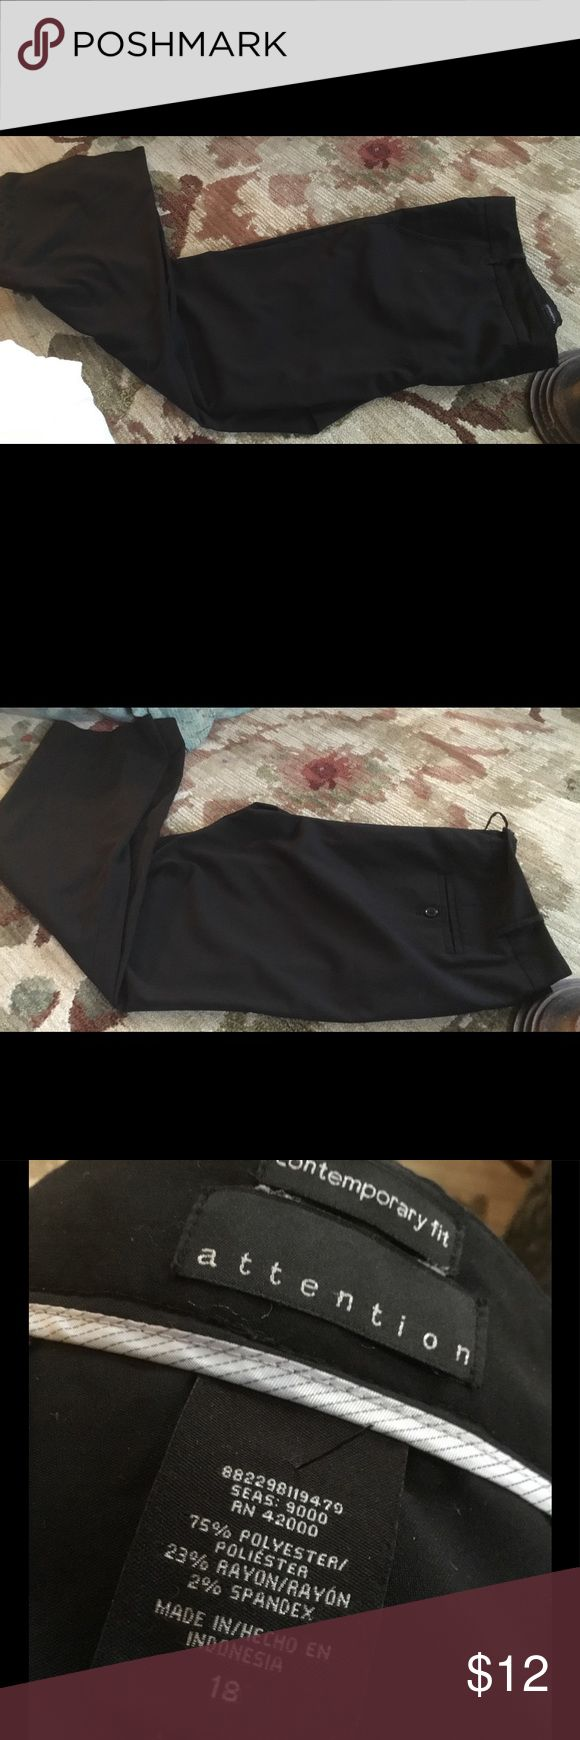 Nice casual slacks Worn once.  Polyester rayon and spandex.  Xcellent condition.  Contemporary fit. No stains no tears Attention Pants